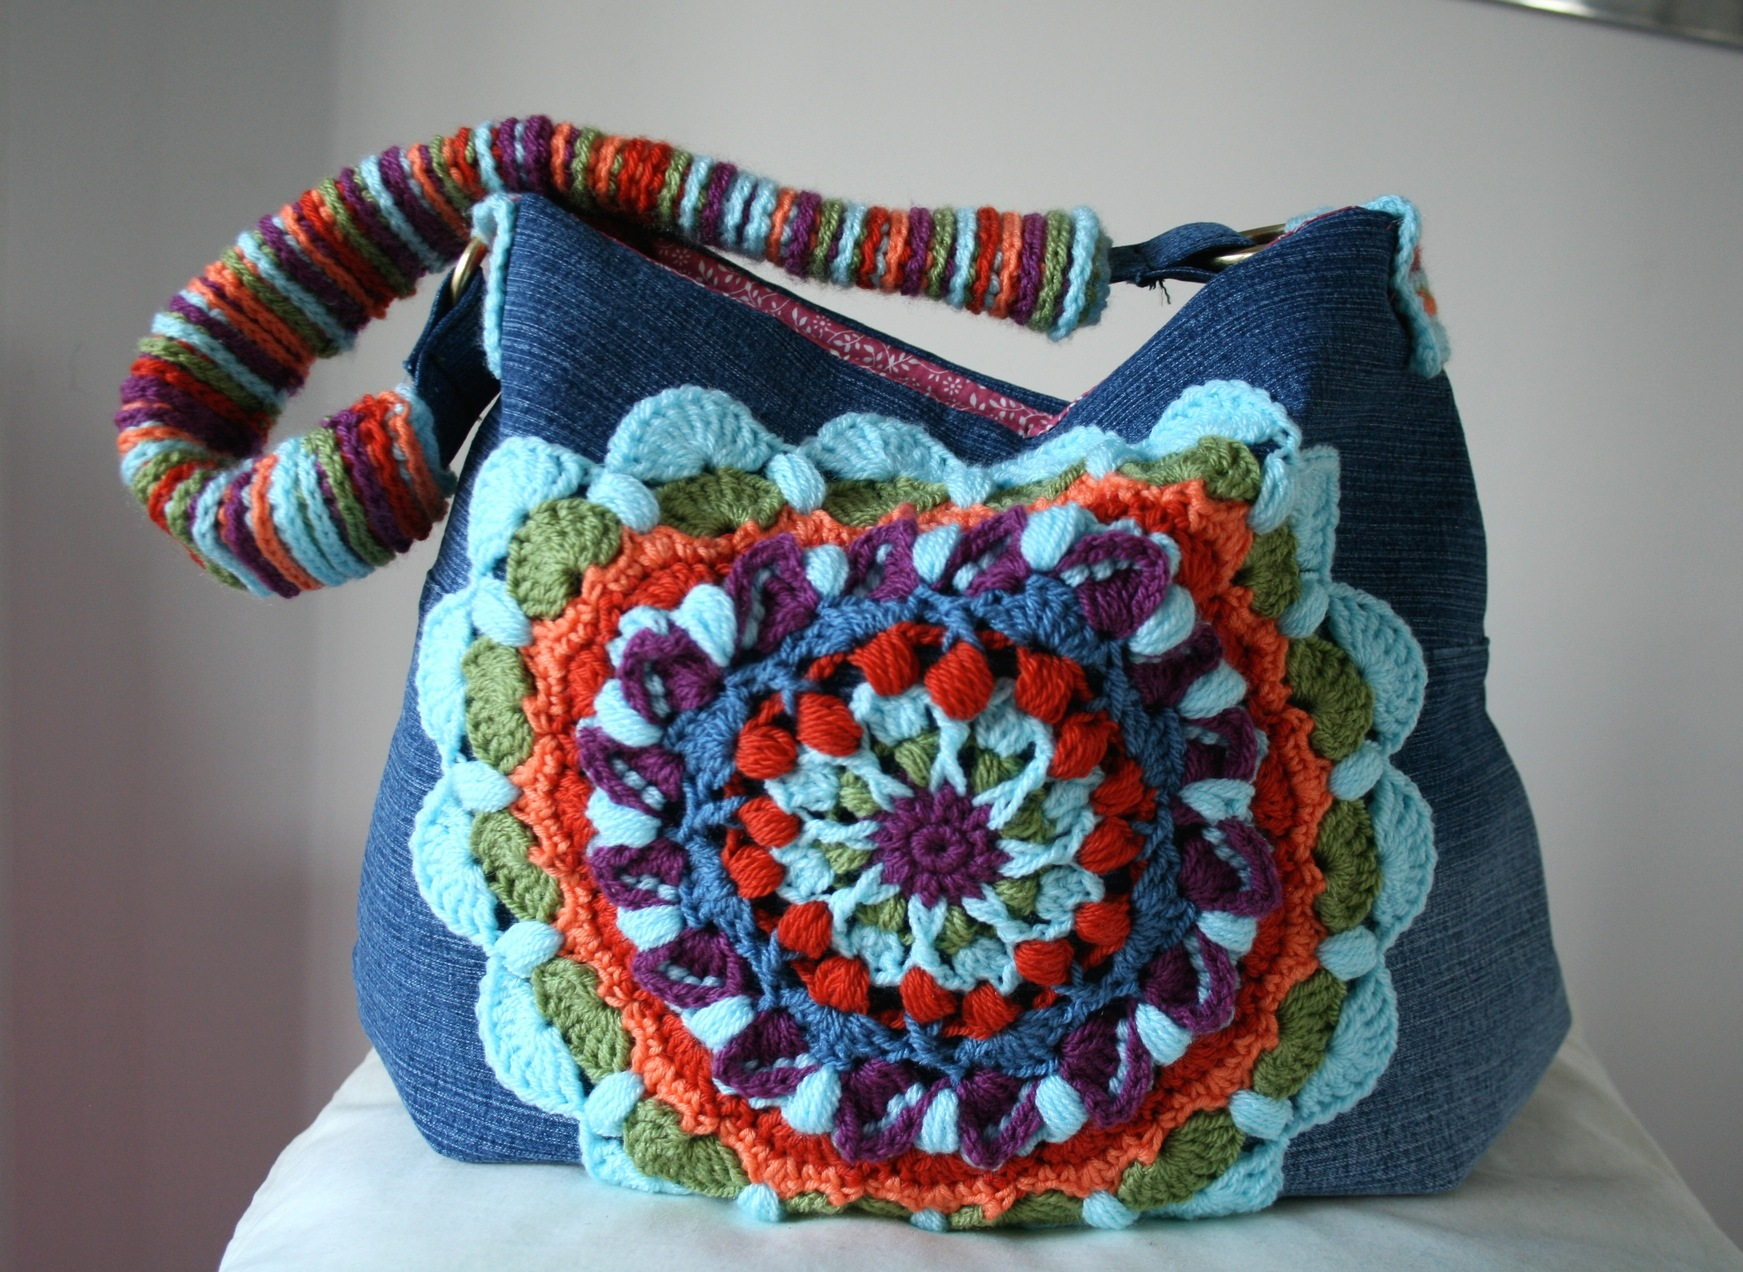 Pinterest Crochet Bags : Upcycled denim and crochet bag pattern giveaway! CLOSED! - Luz ...